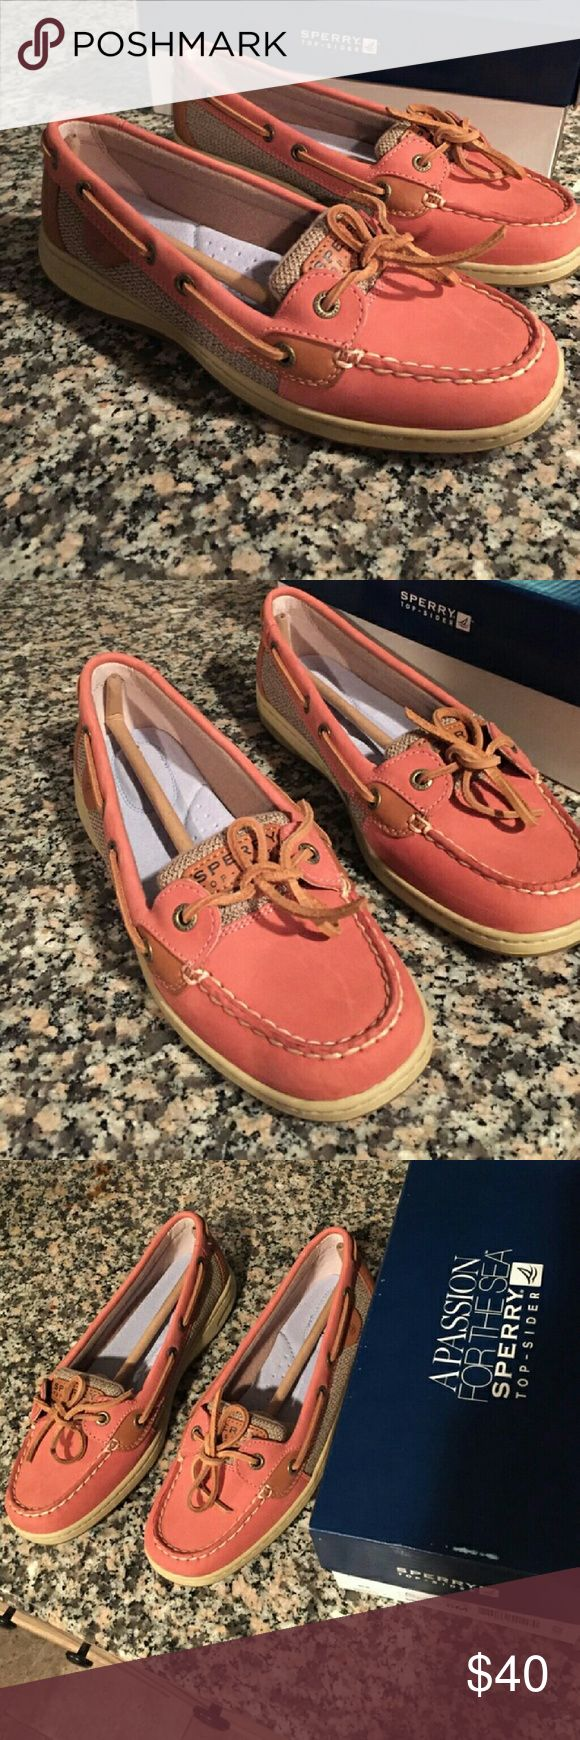 Sperry top siders (angelfish washed red) Boat shoes new in box Sperry Top-Sider Shoes Flats & Loafers